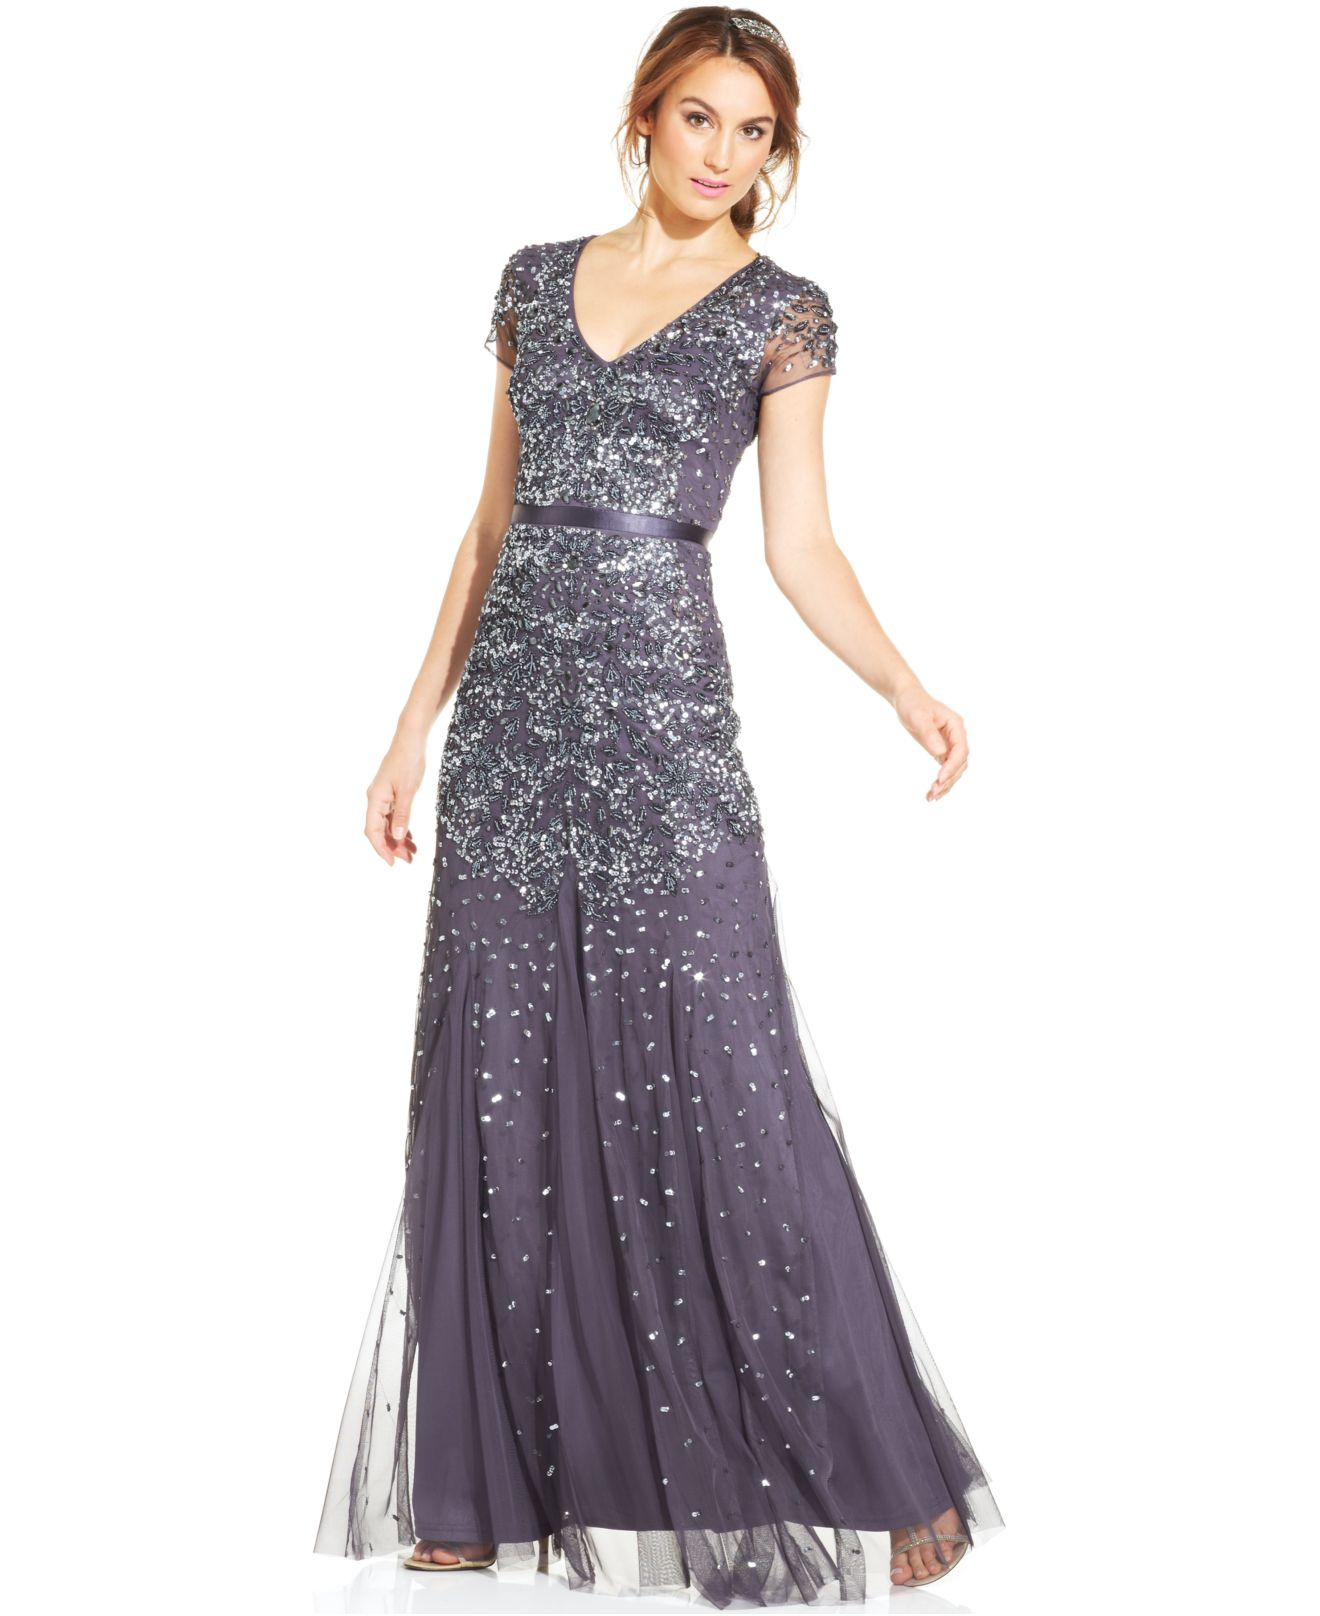 Lyst - Adrianna Papell Cap-sleeve Embellished Gown in Metallic